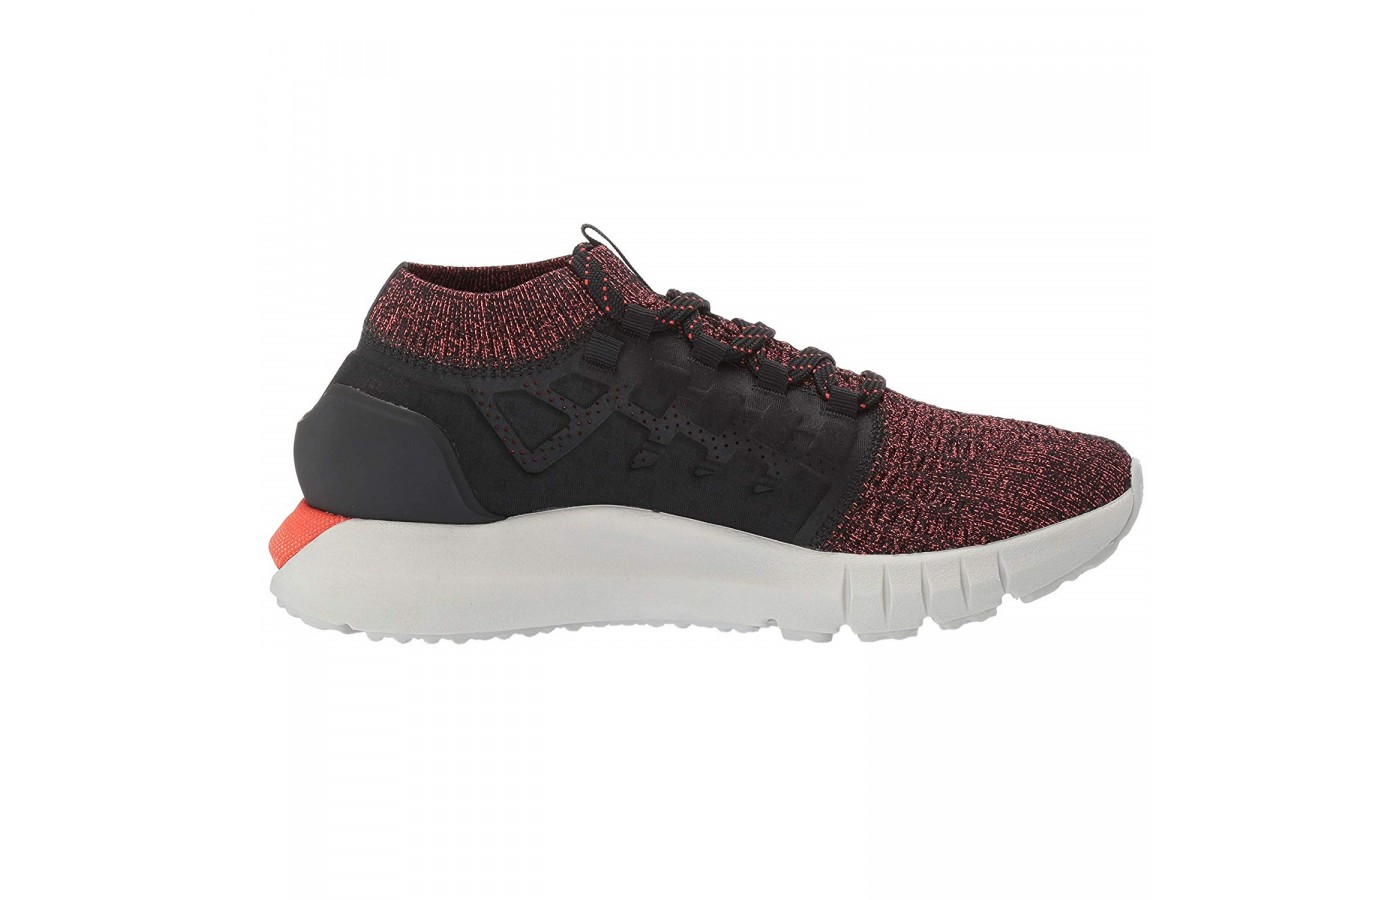 on sale c693c bcbe4 Under Armour HOVR Phantom: To Buy or Not in 2019 | TheGearHunt